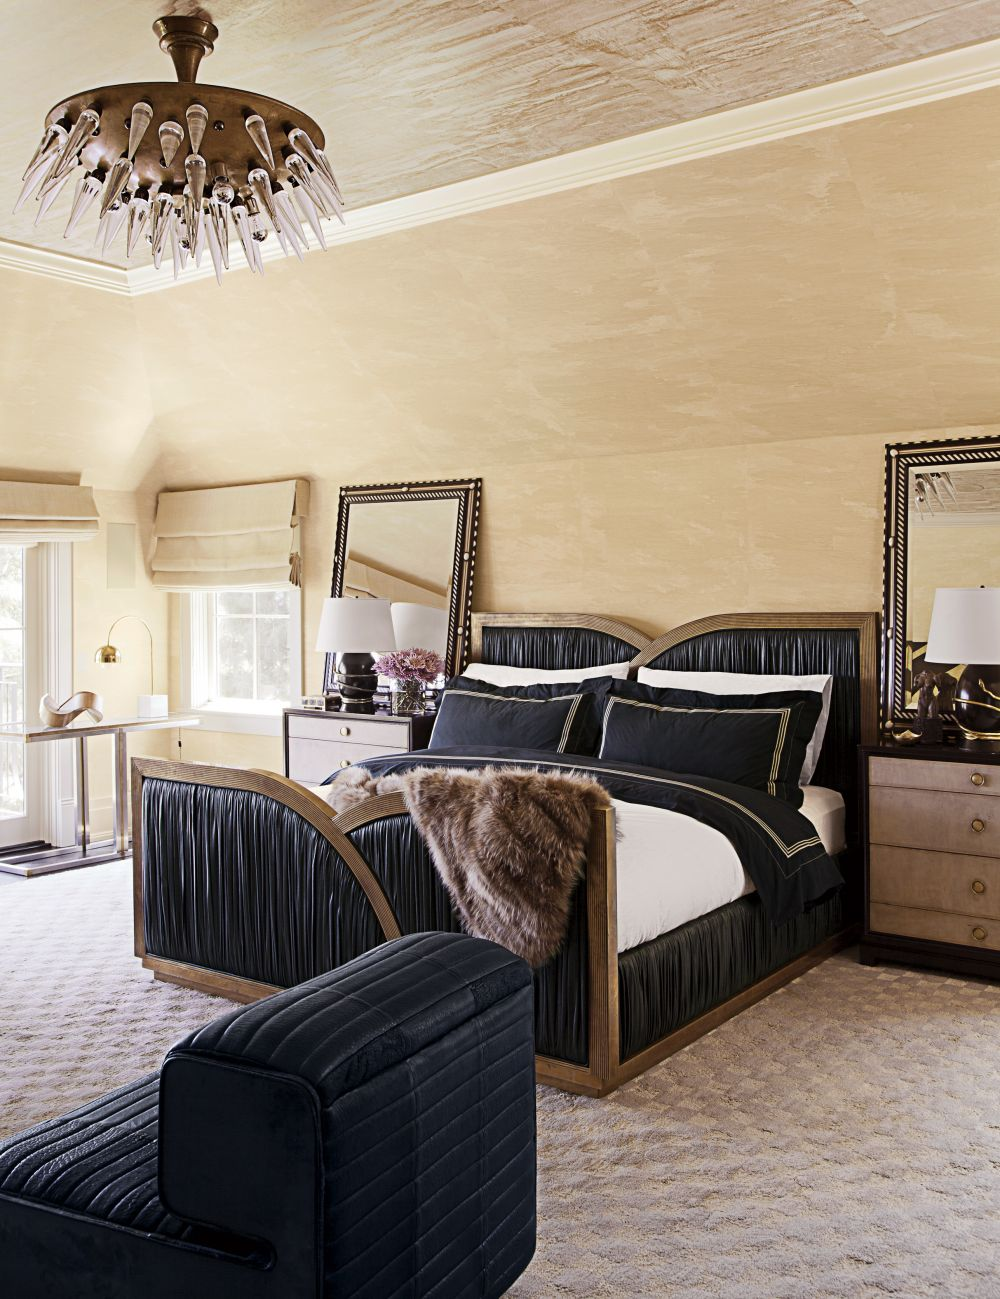 contemporary-bedroom-kelly-wearstler-bel-air-california-201301-2_1000